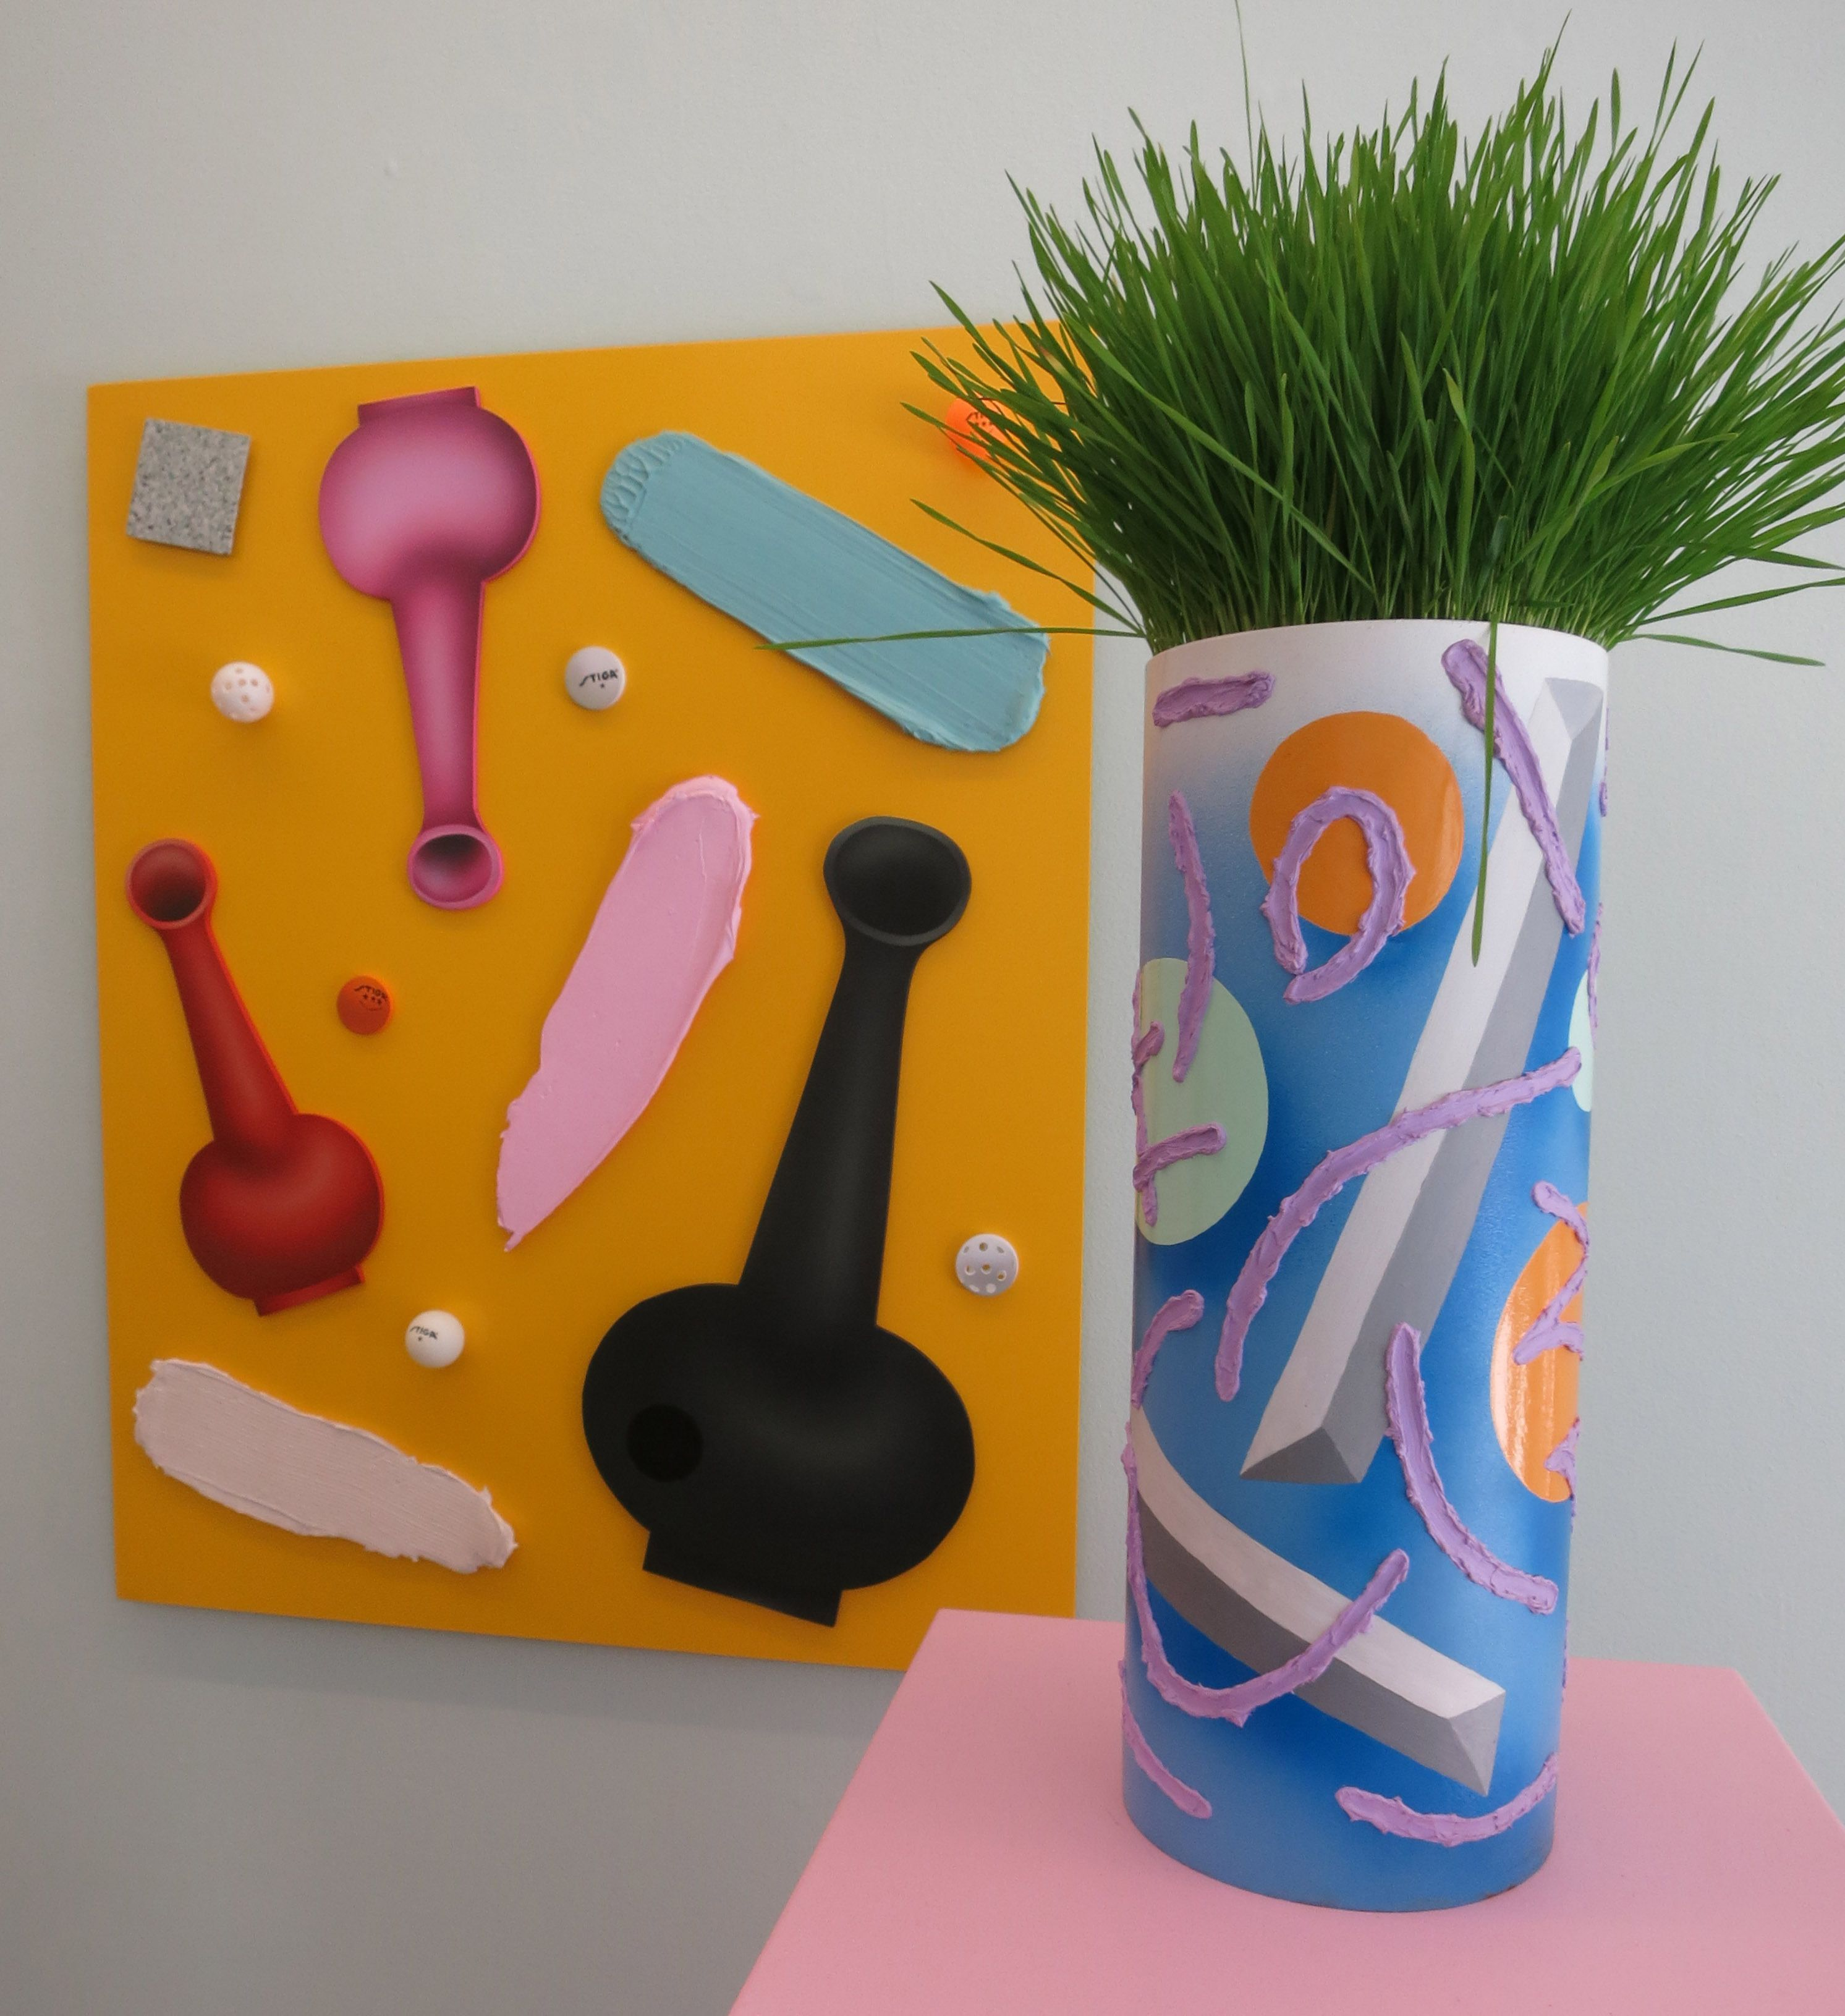 Taking an 80s aesthetic as inspiration, Ben Sander's steel vase is a surprisingly sturdy support for an abstract design of floating shapes and heavily textured lines of lavender paint. Sander's accompanying 2-D work behind likewise balances the substantial – thick marks resembling giant paint strokes – with unanchored shapes including ping pong and Wiffle balls to offer an amusing musing on taste. (At Chelsea's Asya Geisberg Gallery through June 25th). Ben Sanders, Blue Tube Dude, enamel and…